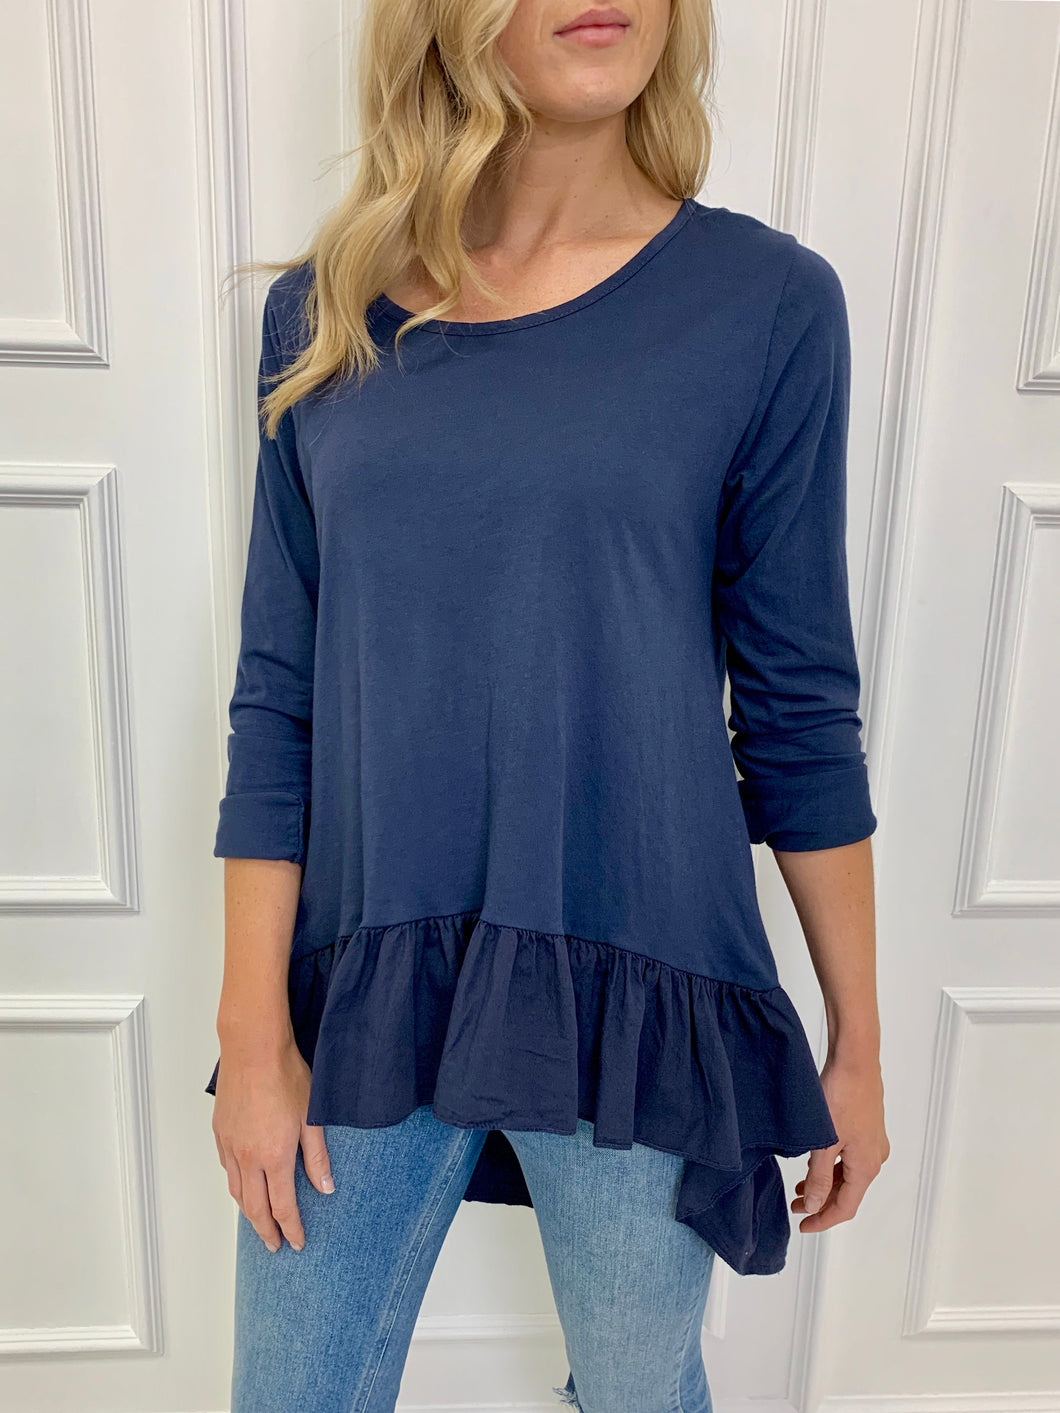 The Tazmin Tee in Navy